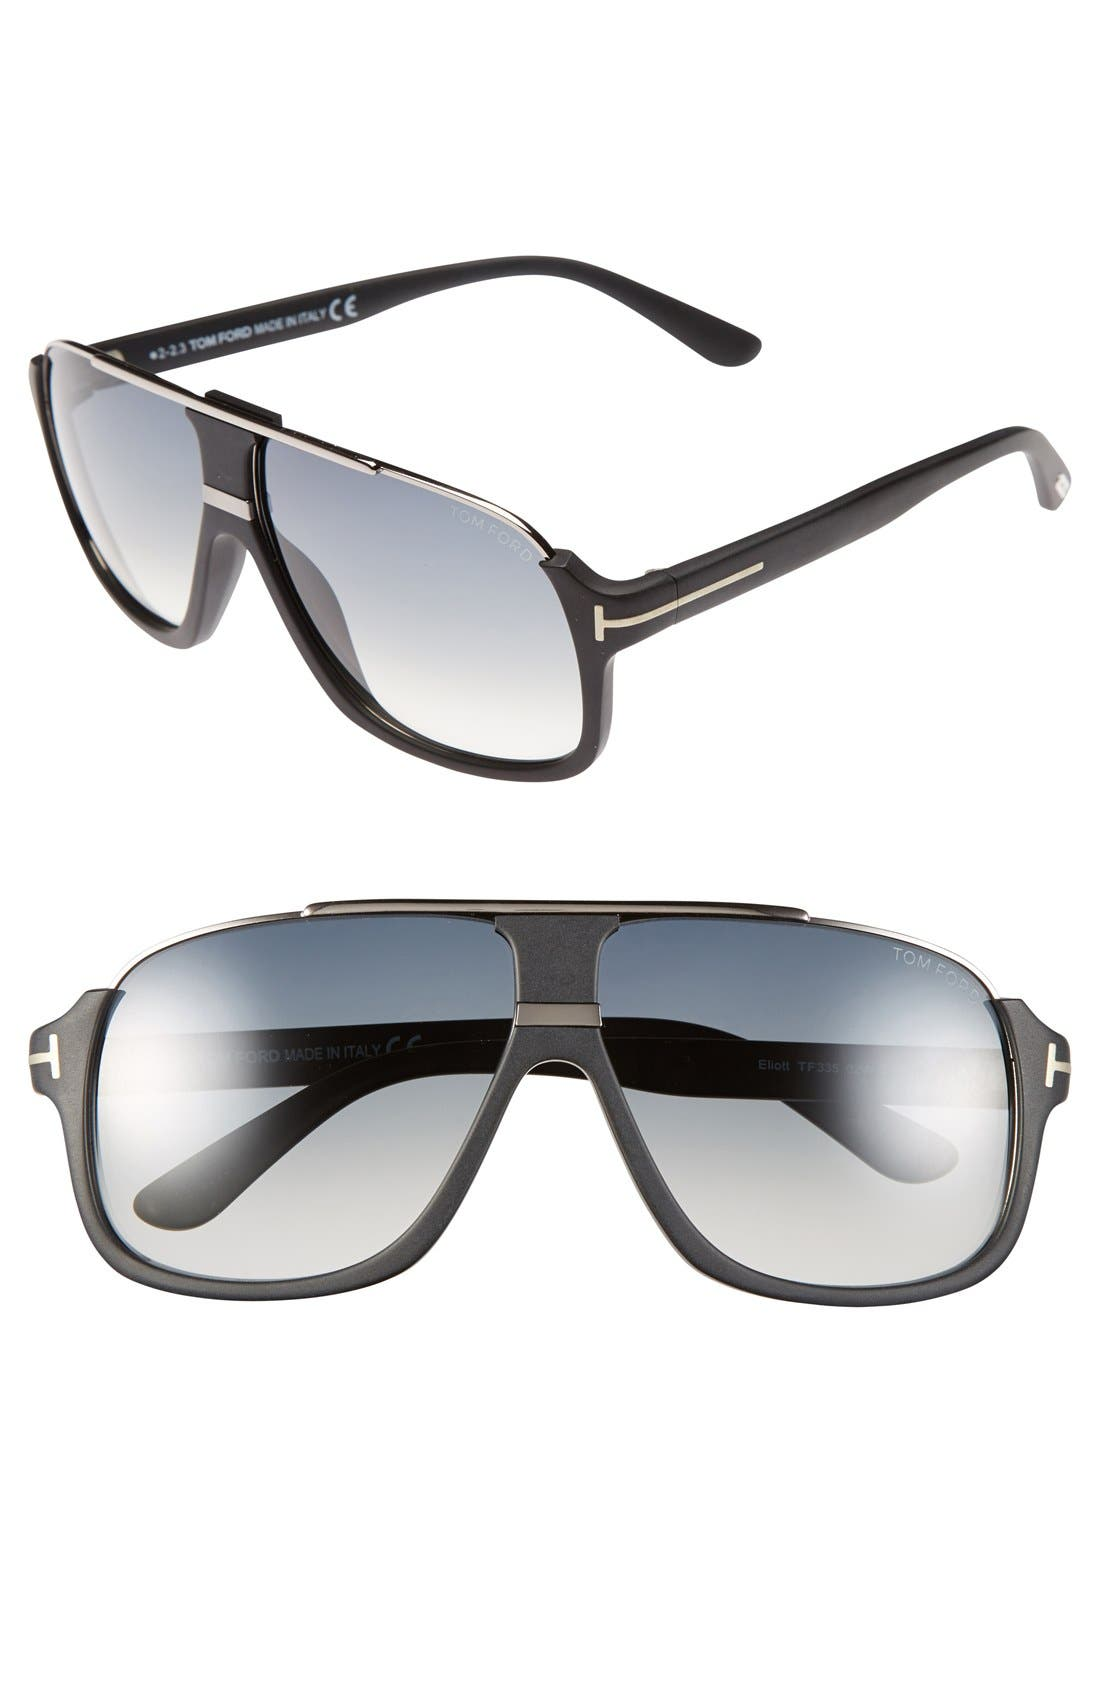 Alternate Image 1 Selected - Tom Ford 'Eliot' 60mm Sunglasses